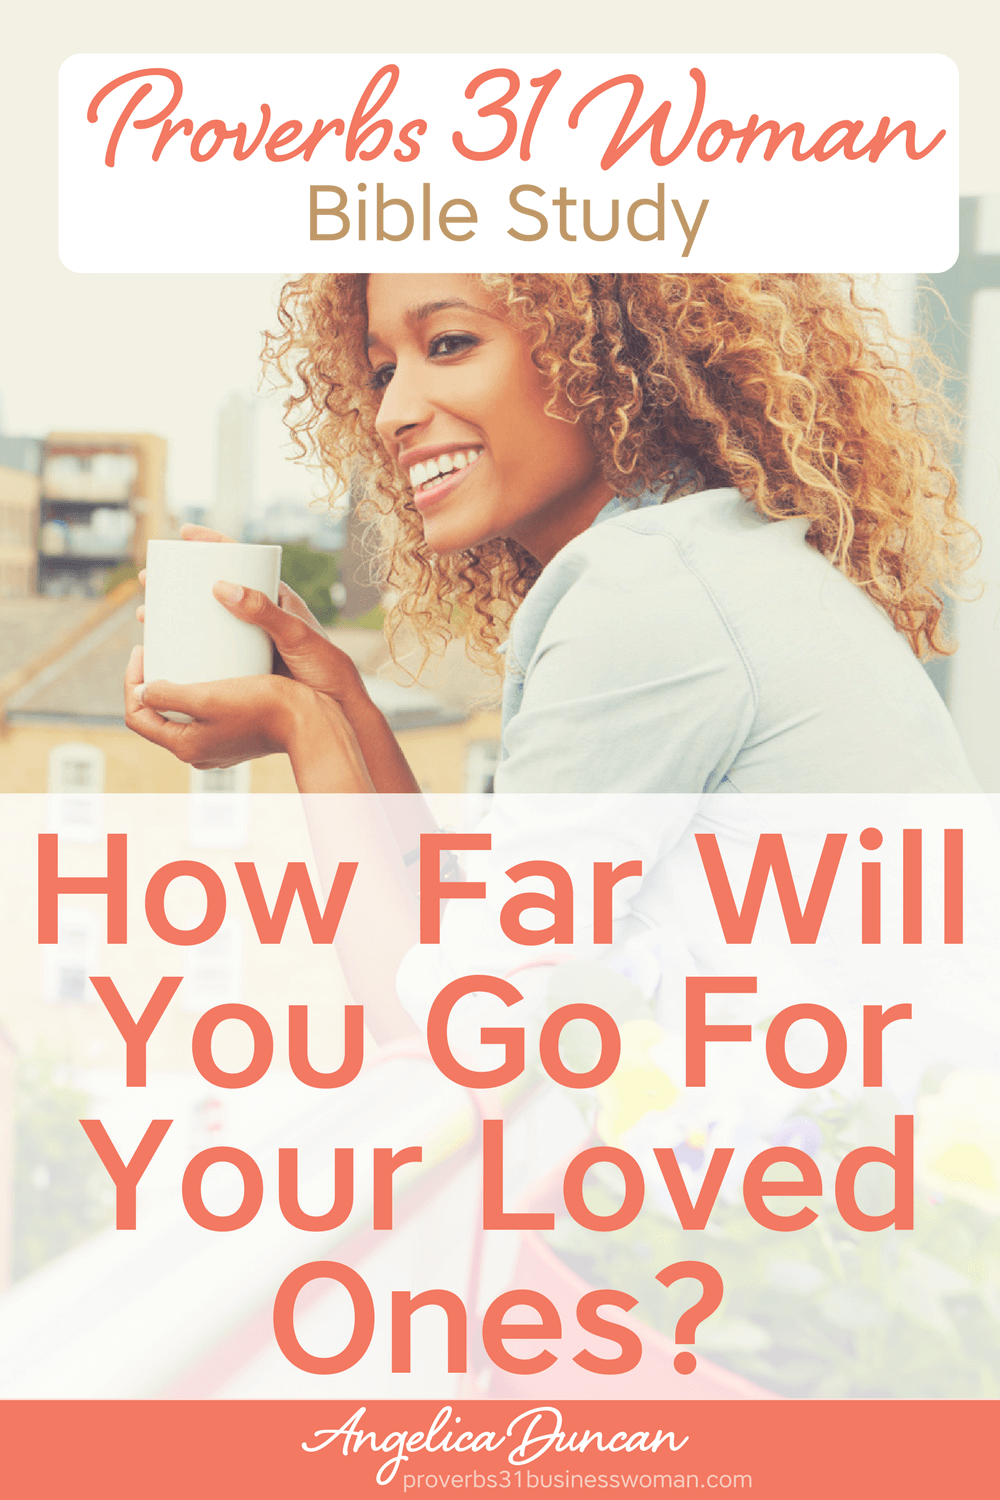 Will you go to great lengths to nourish, nurture, and tend to the needs of your family? Find out how in our Proverbs 31 Woman Bible Study! #p31 #proverbs31woman #proverbs31businesswoman #biblestudy #christianblogger #jesusgirl